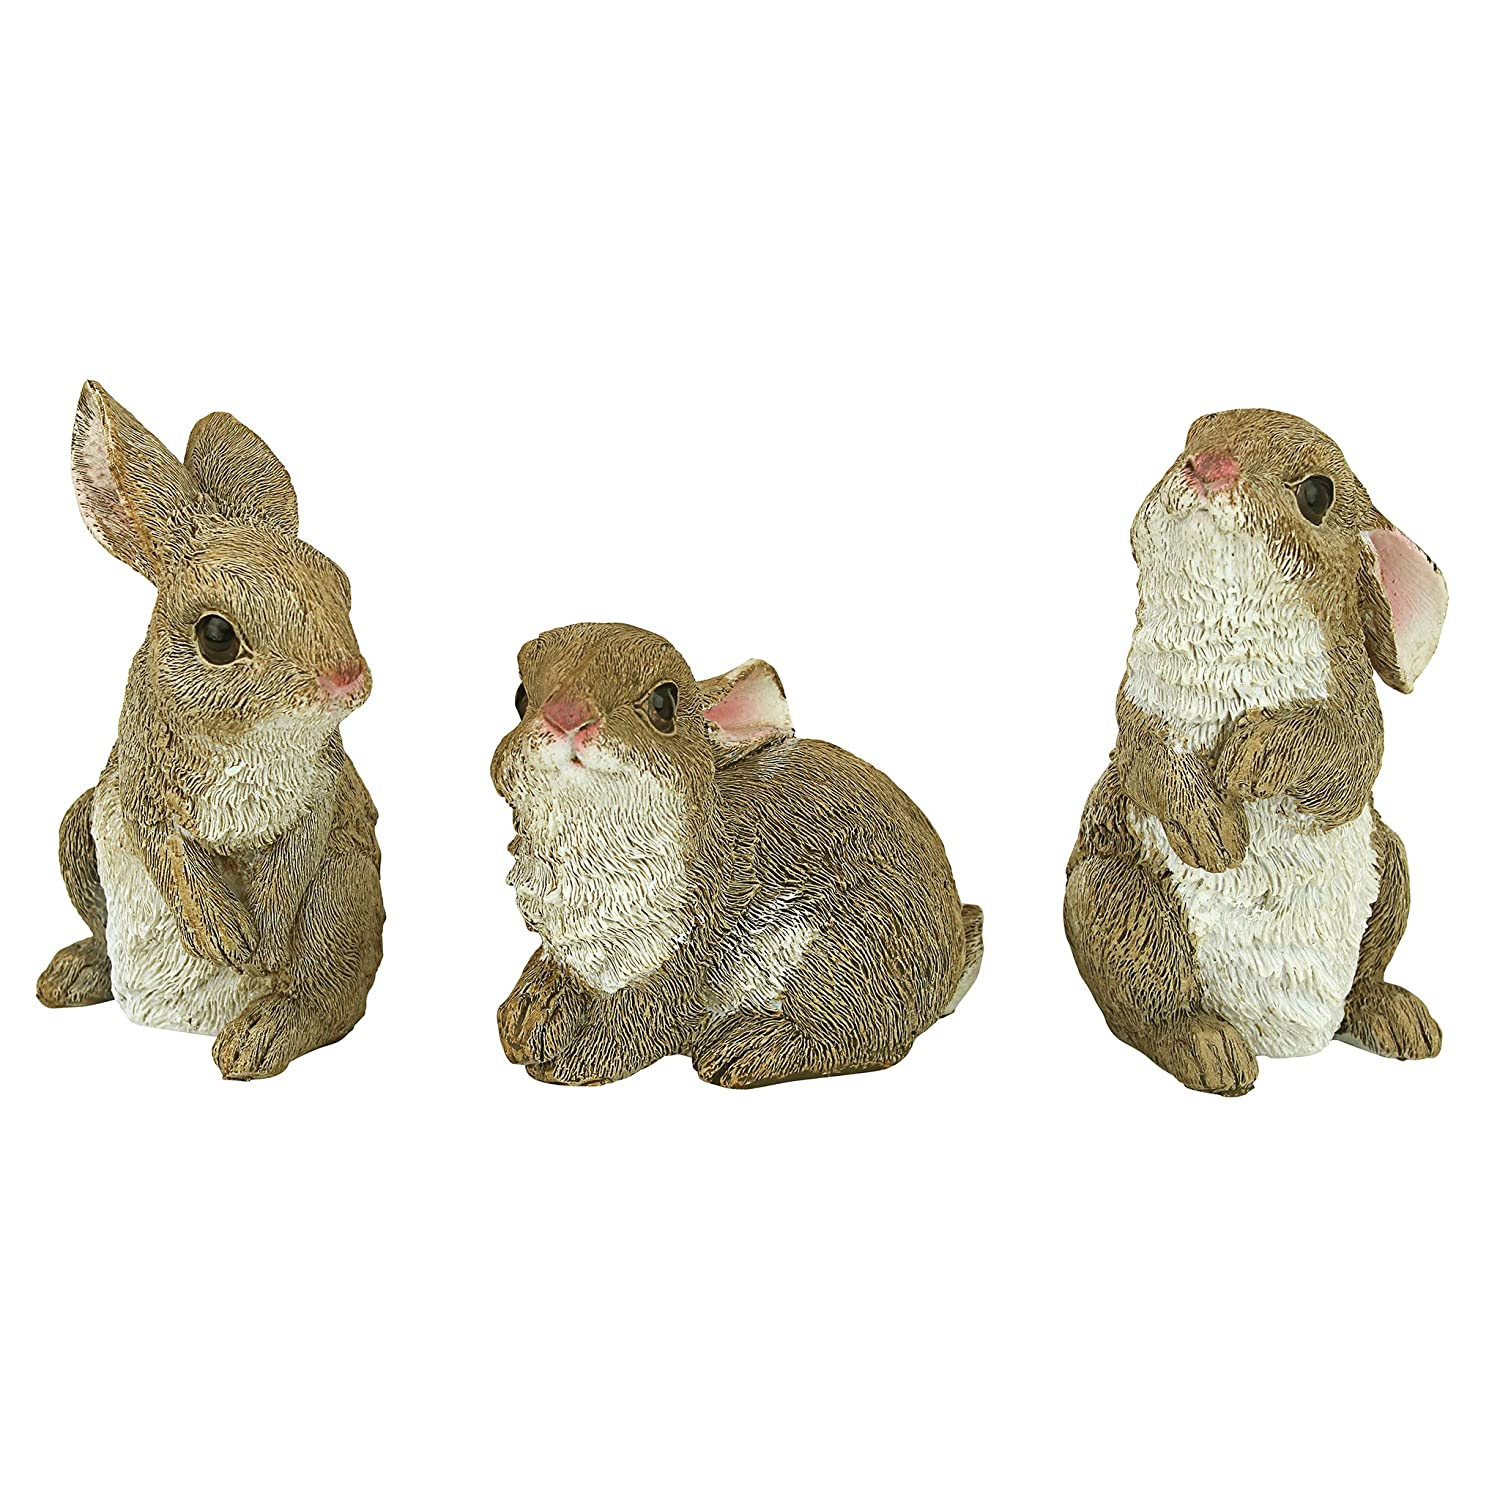 Design Toscano The Bunny Den, Garden Rabbit Statues